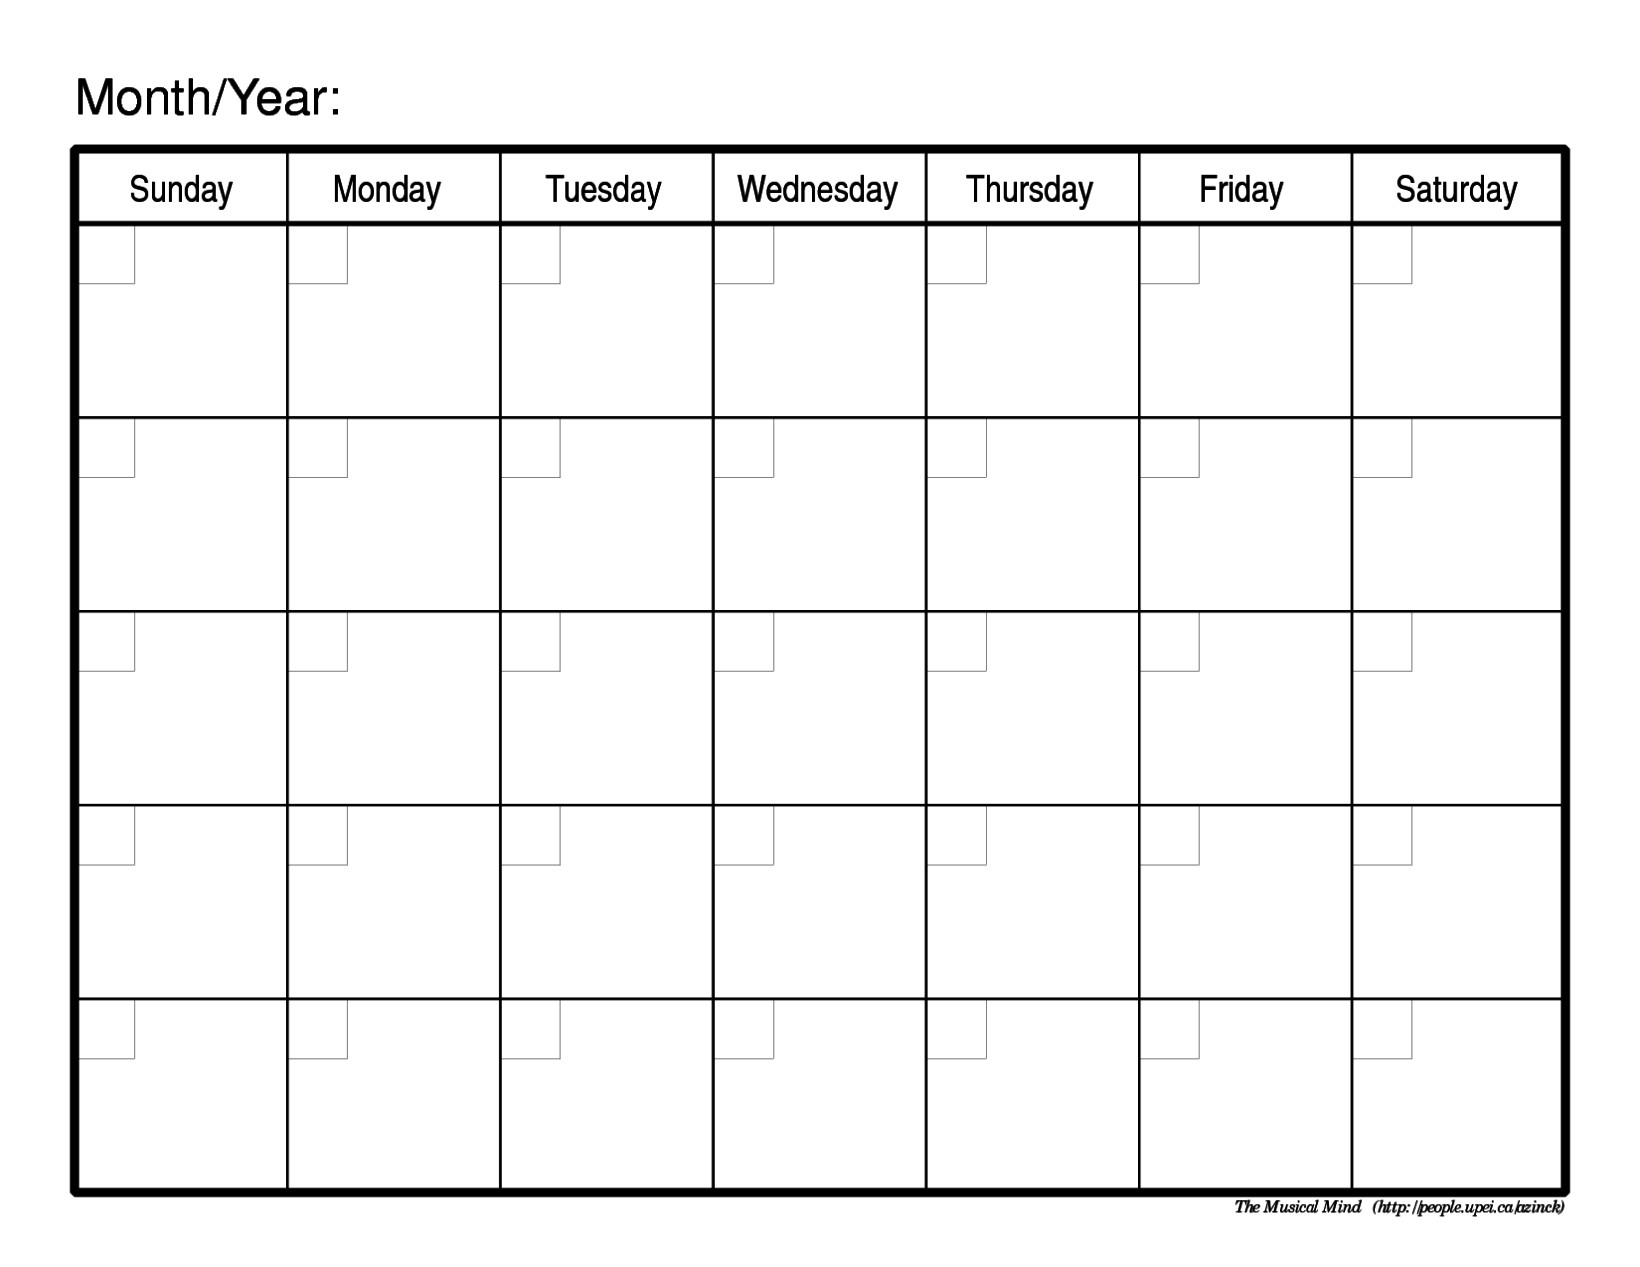 Schedule Template Free Printable Monthly Calendar Editable Weekly within Printable Blank Schedules Monthly